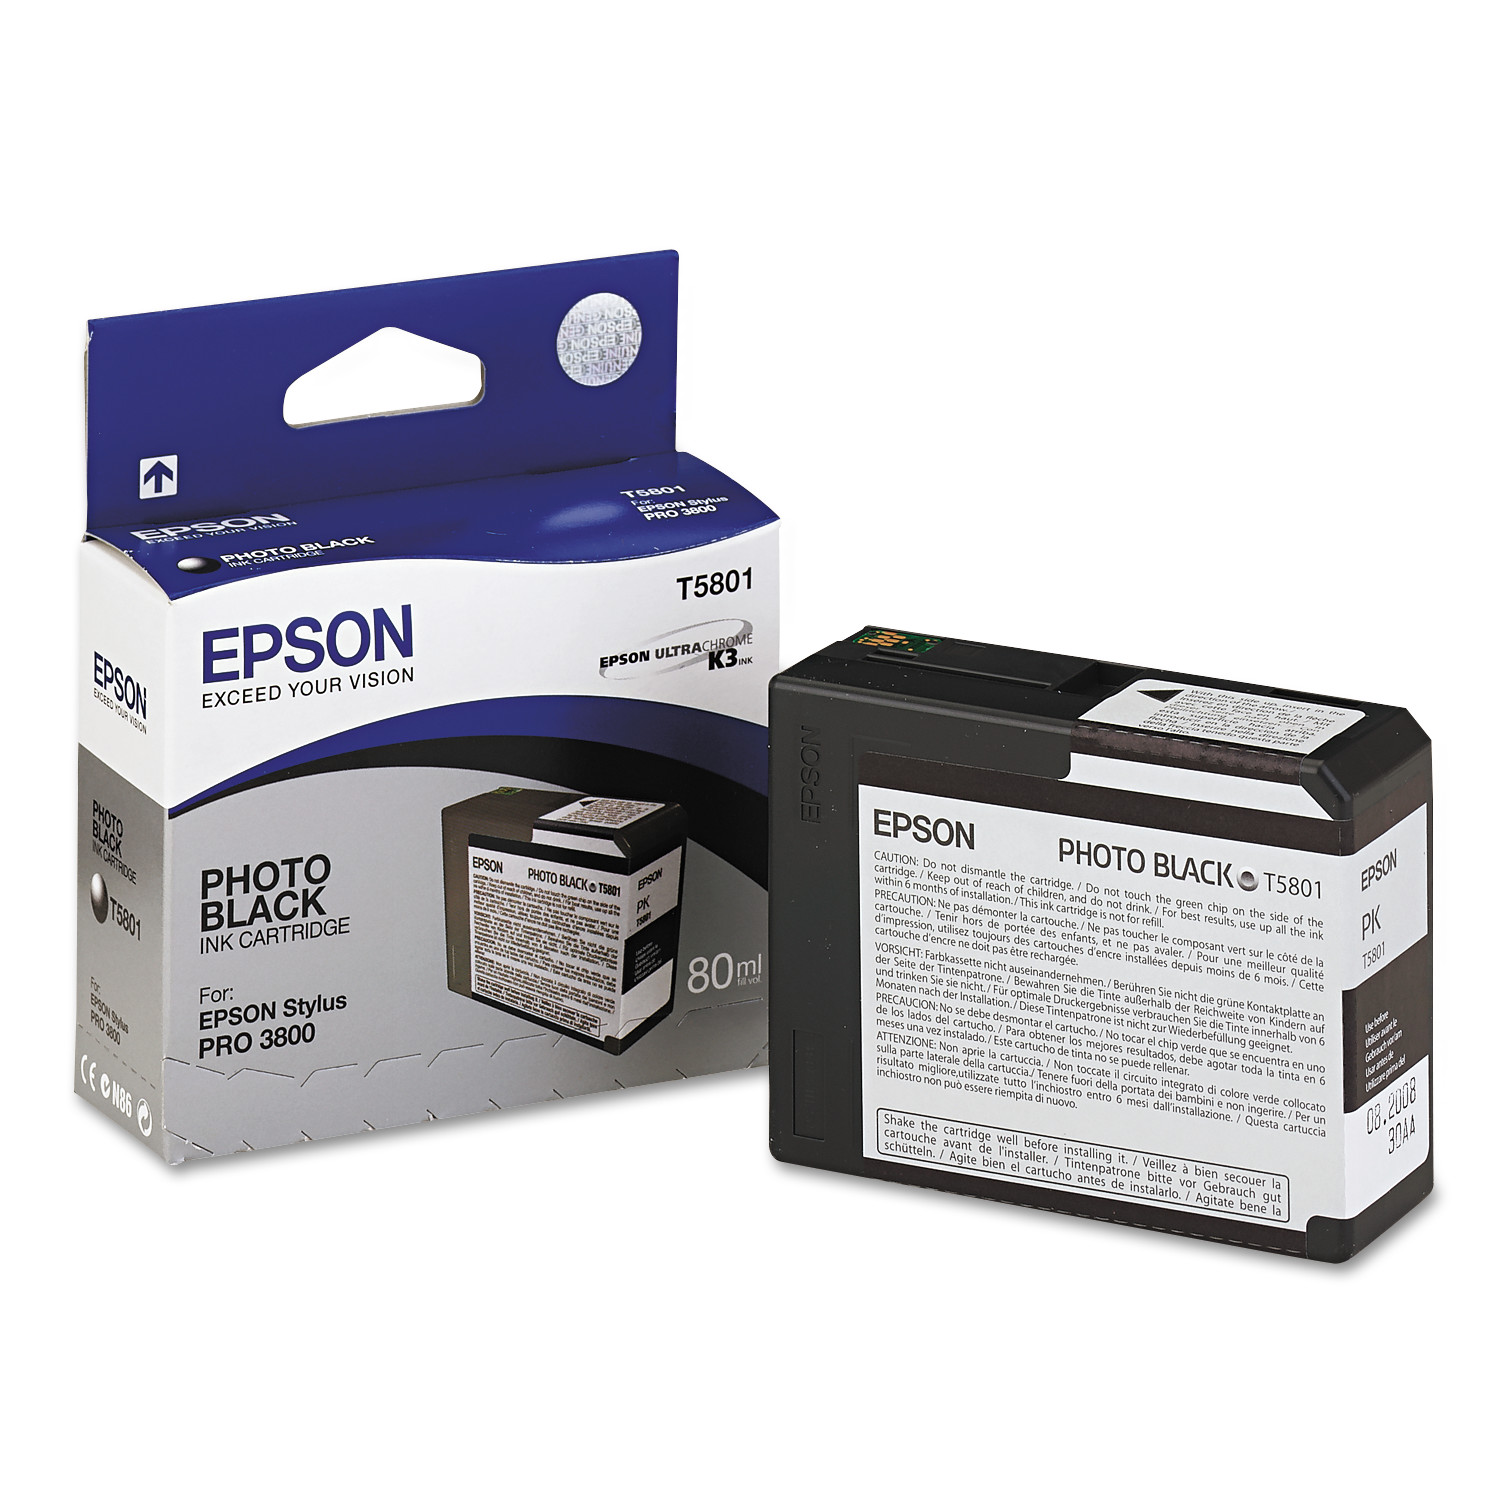 Epson T580100 UltraChrome K3 Ink, Photo Black by Epson